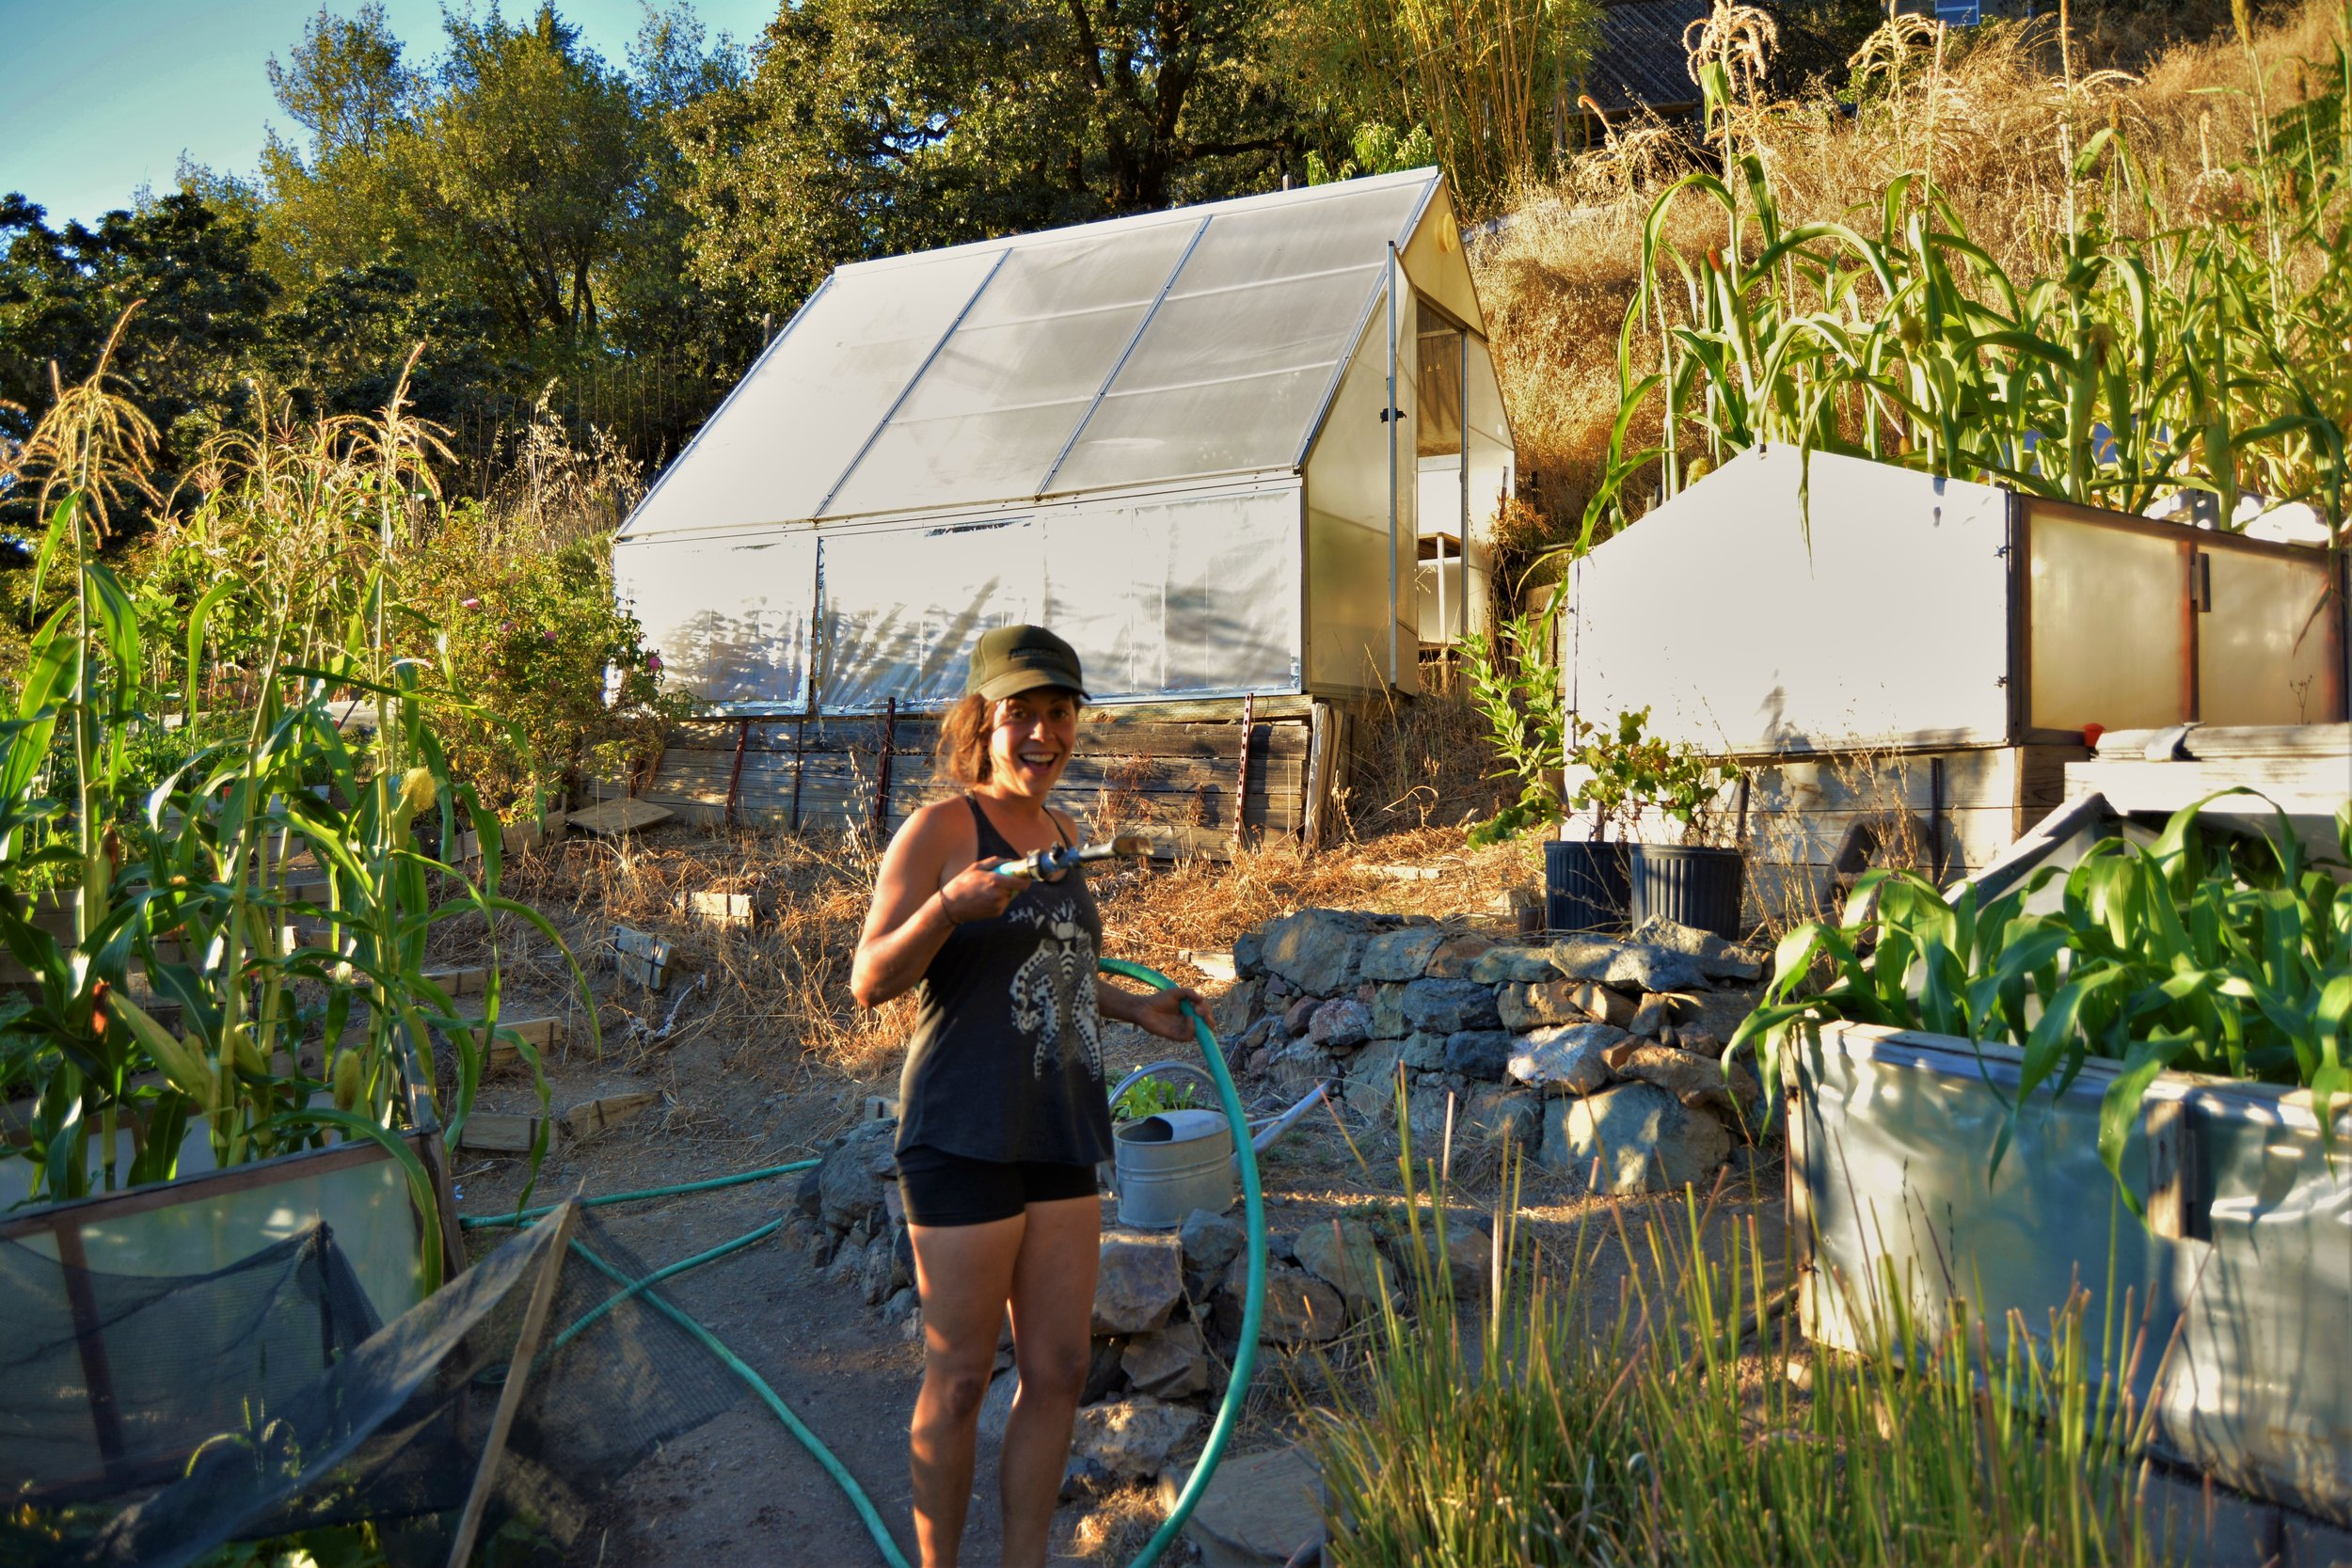 Volunteer - A helping hand, or two, is a great way to support our projects.You'll be contributing in a significant way, and you'll gain knowledge and skills at the same time!Our Research and Demonstration Garden is full of opportunities to get your hands dirty, please contact us if you're interested!